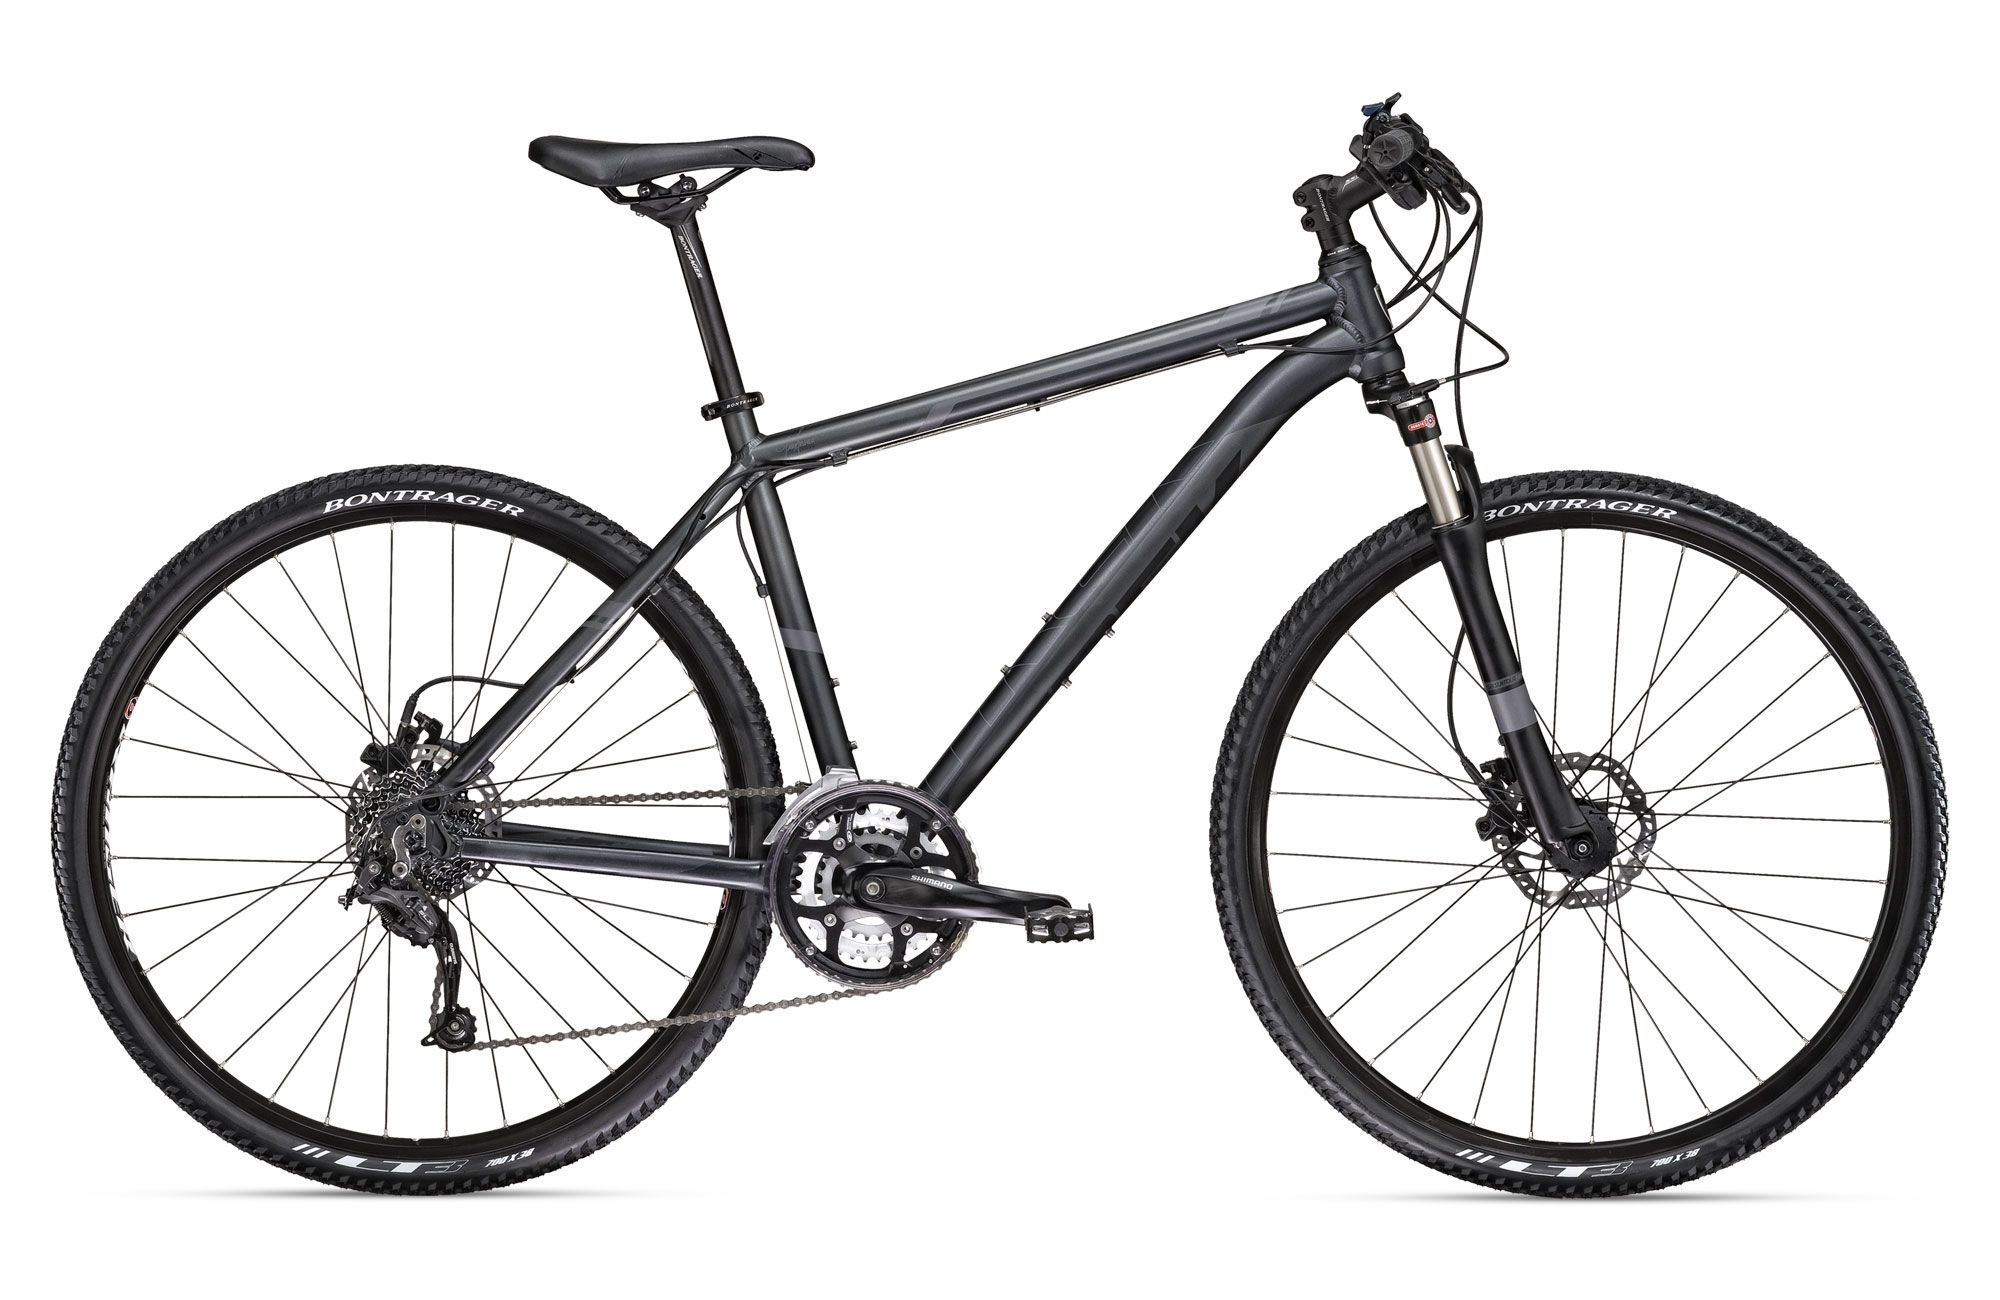 Fisher Dual Sport Montare Mountain Bike Reviews Trek Bicycle